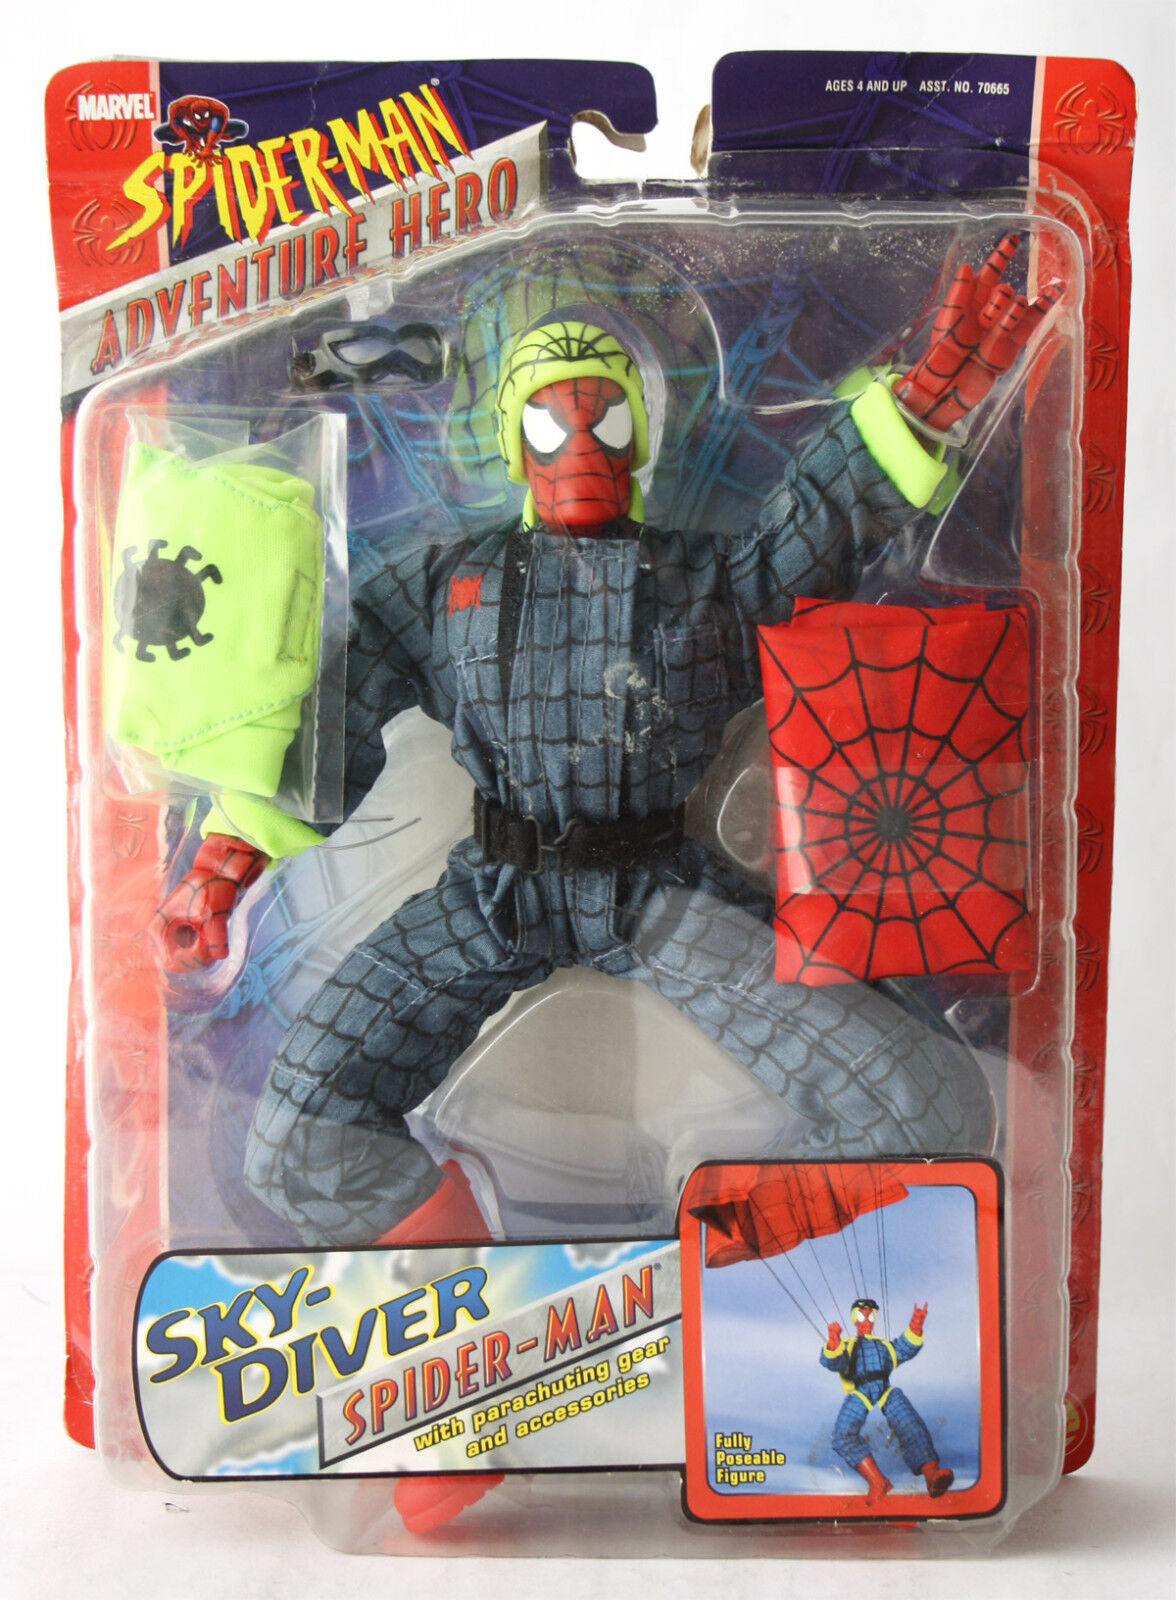 RARE 2003 SPIDERMAN ADVENTURE HERO SKY DIVER SPIDER FIGURE TOY BIZ NEW SEALED